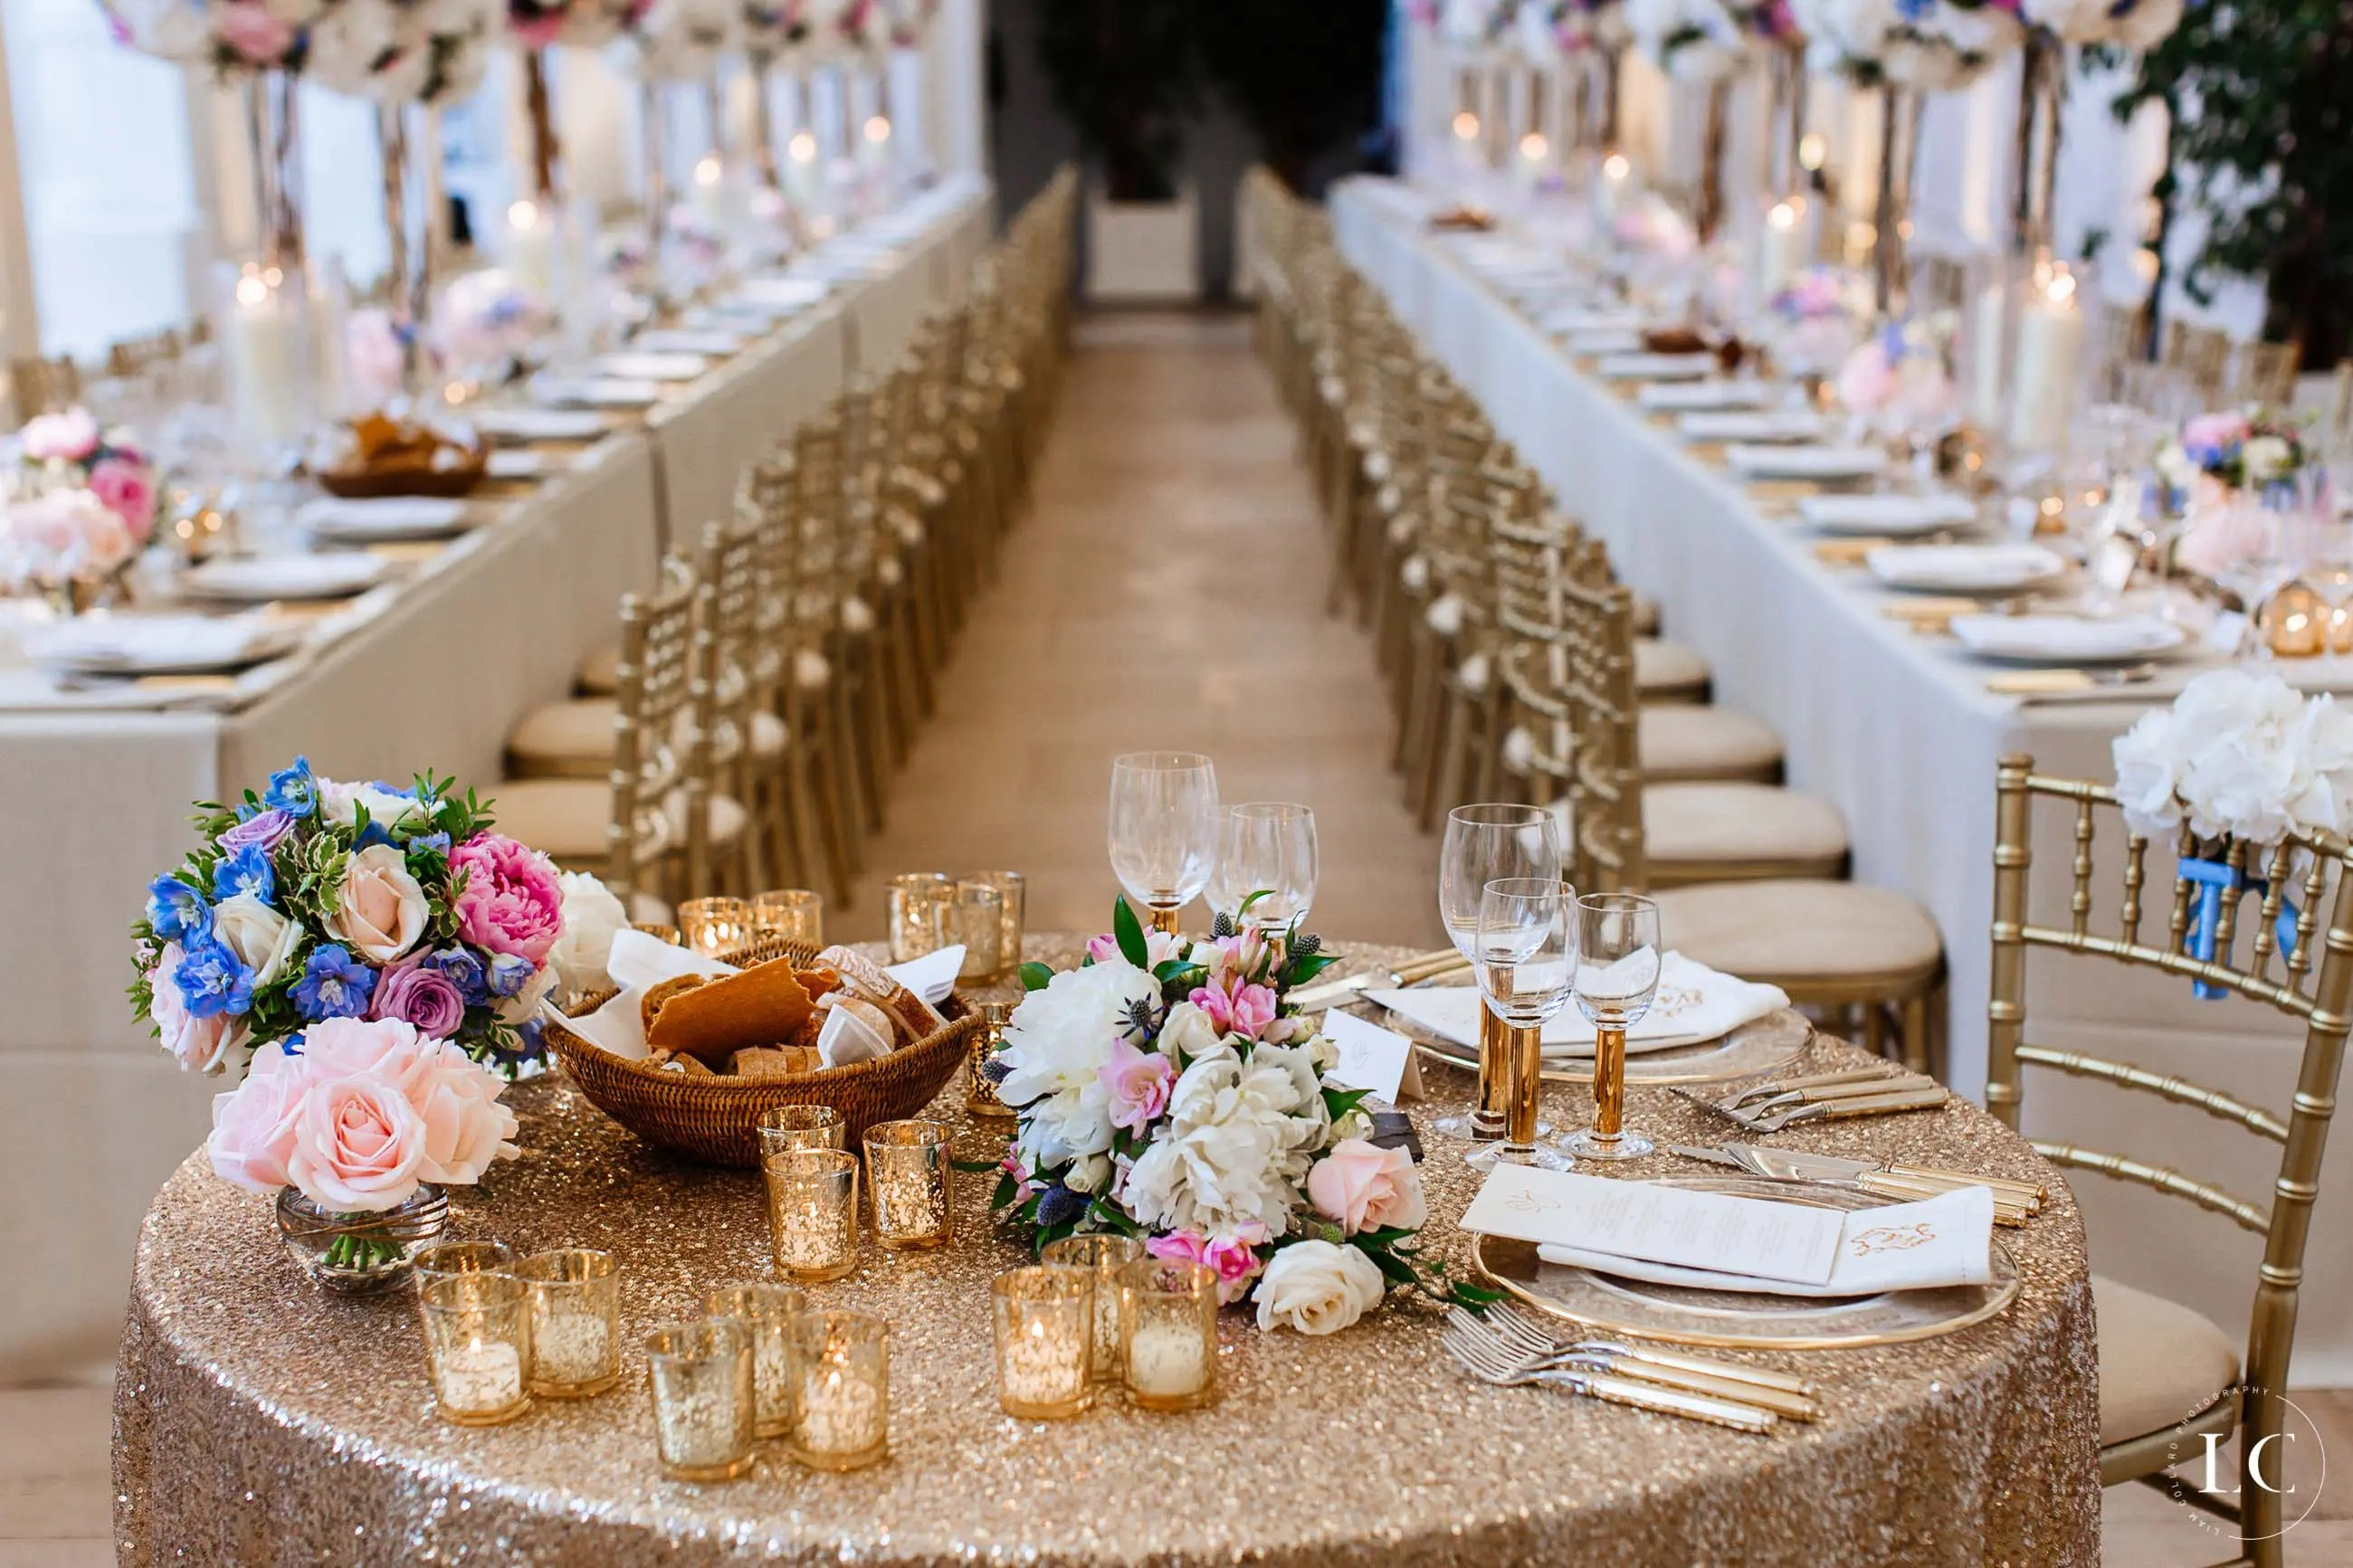 Flower and table arrangement